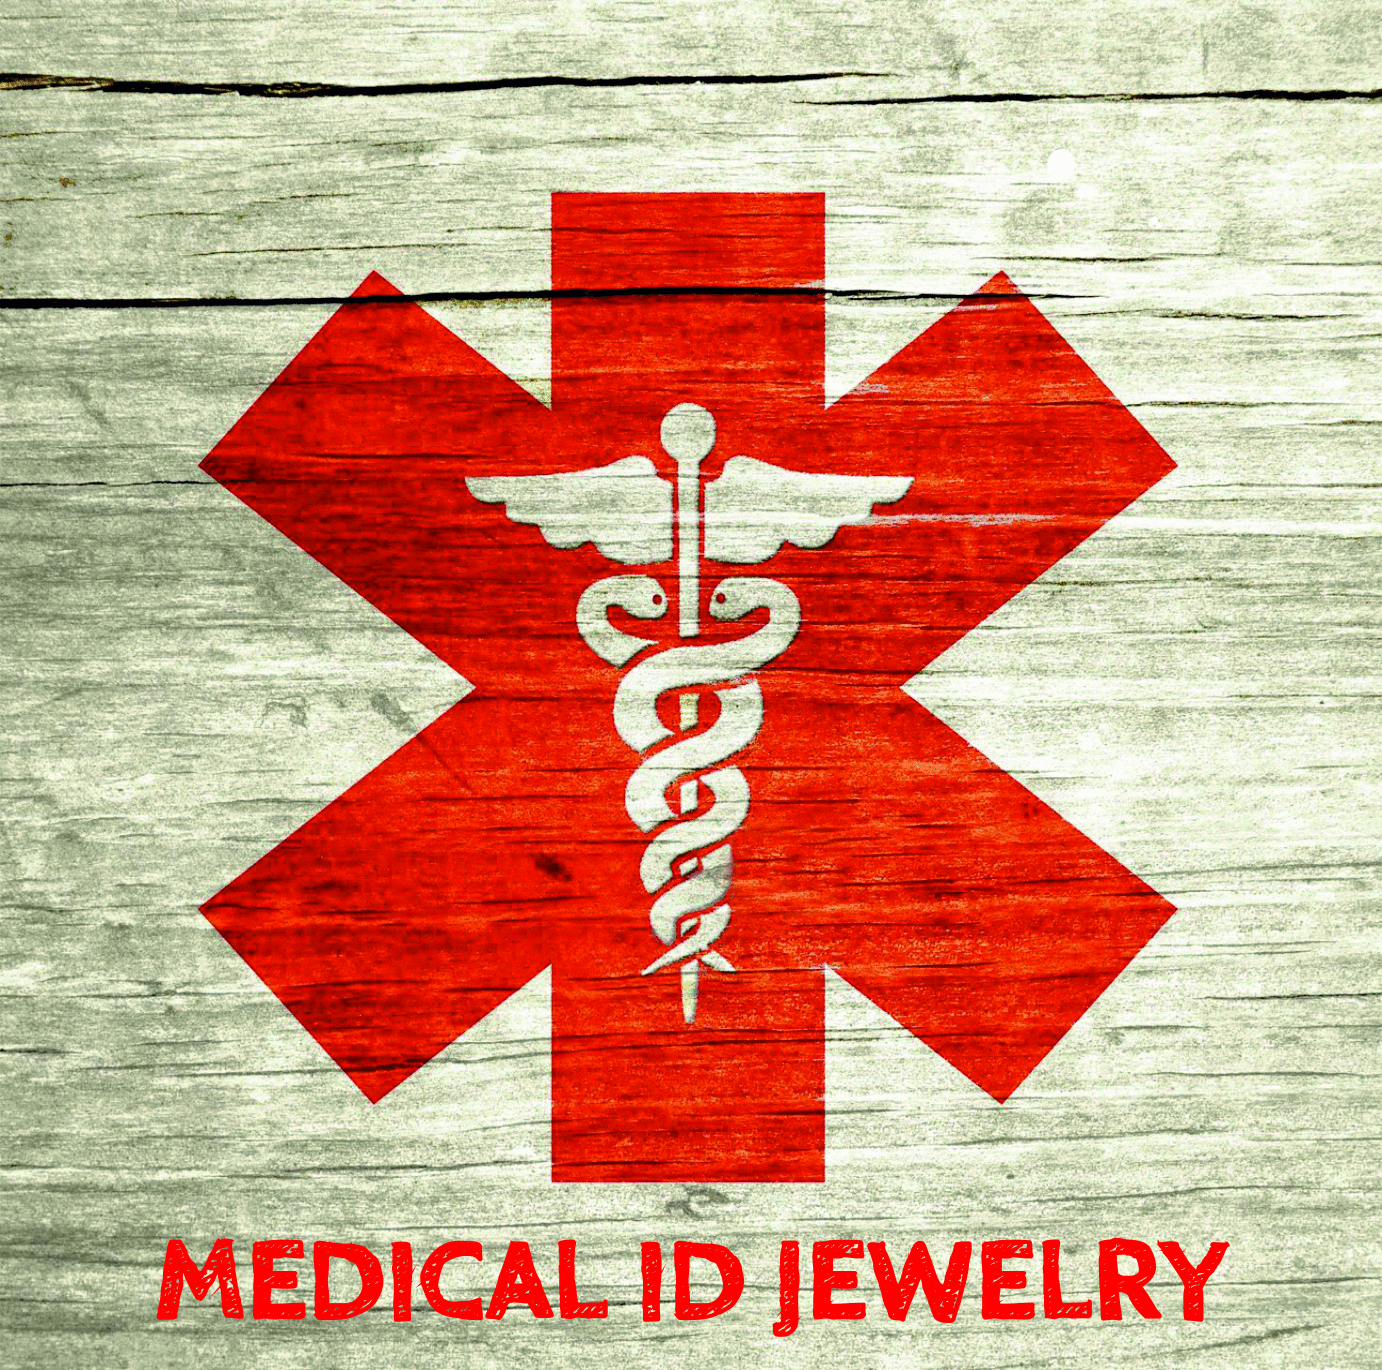 MEDICAL_ID_JEWELRY